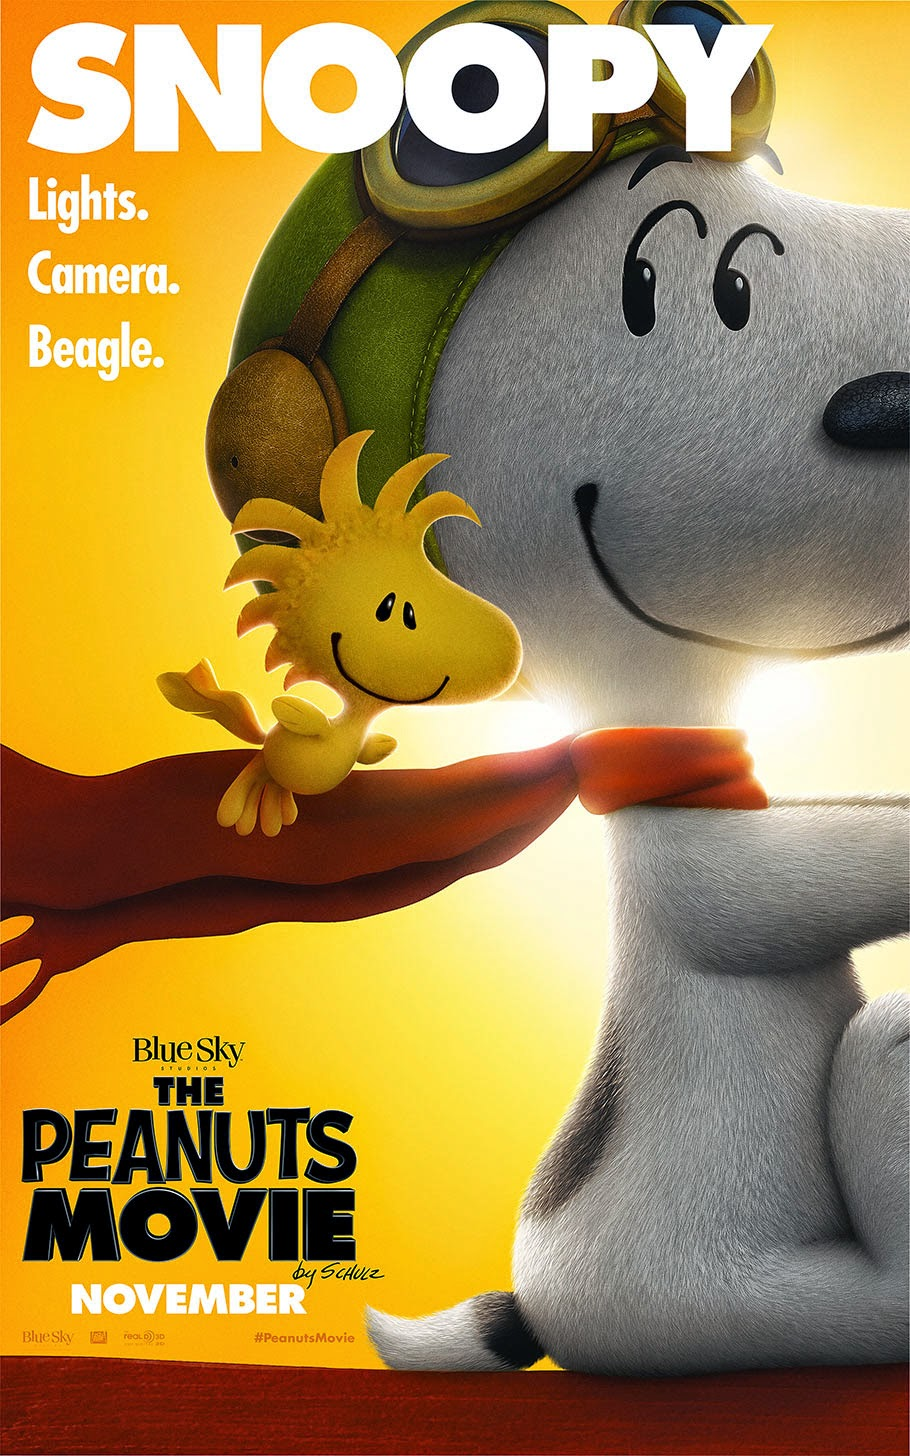 Cartoon Brew Has A Story About The New Series Of PEANUTS Movie Posters That Fox Just Released And Why Characters Look So Hyper Detailed In Them